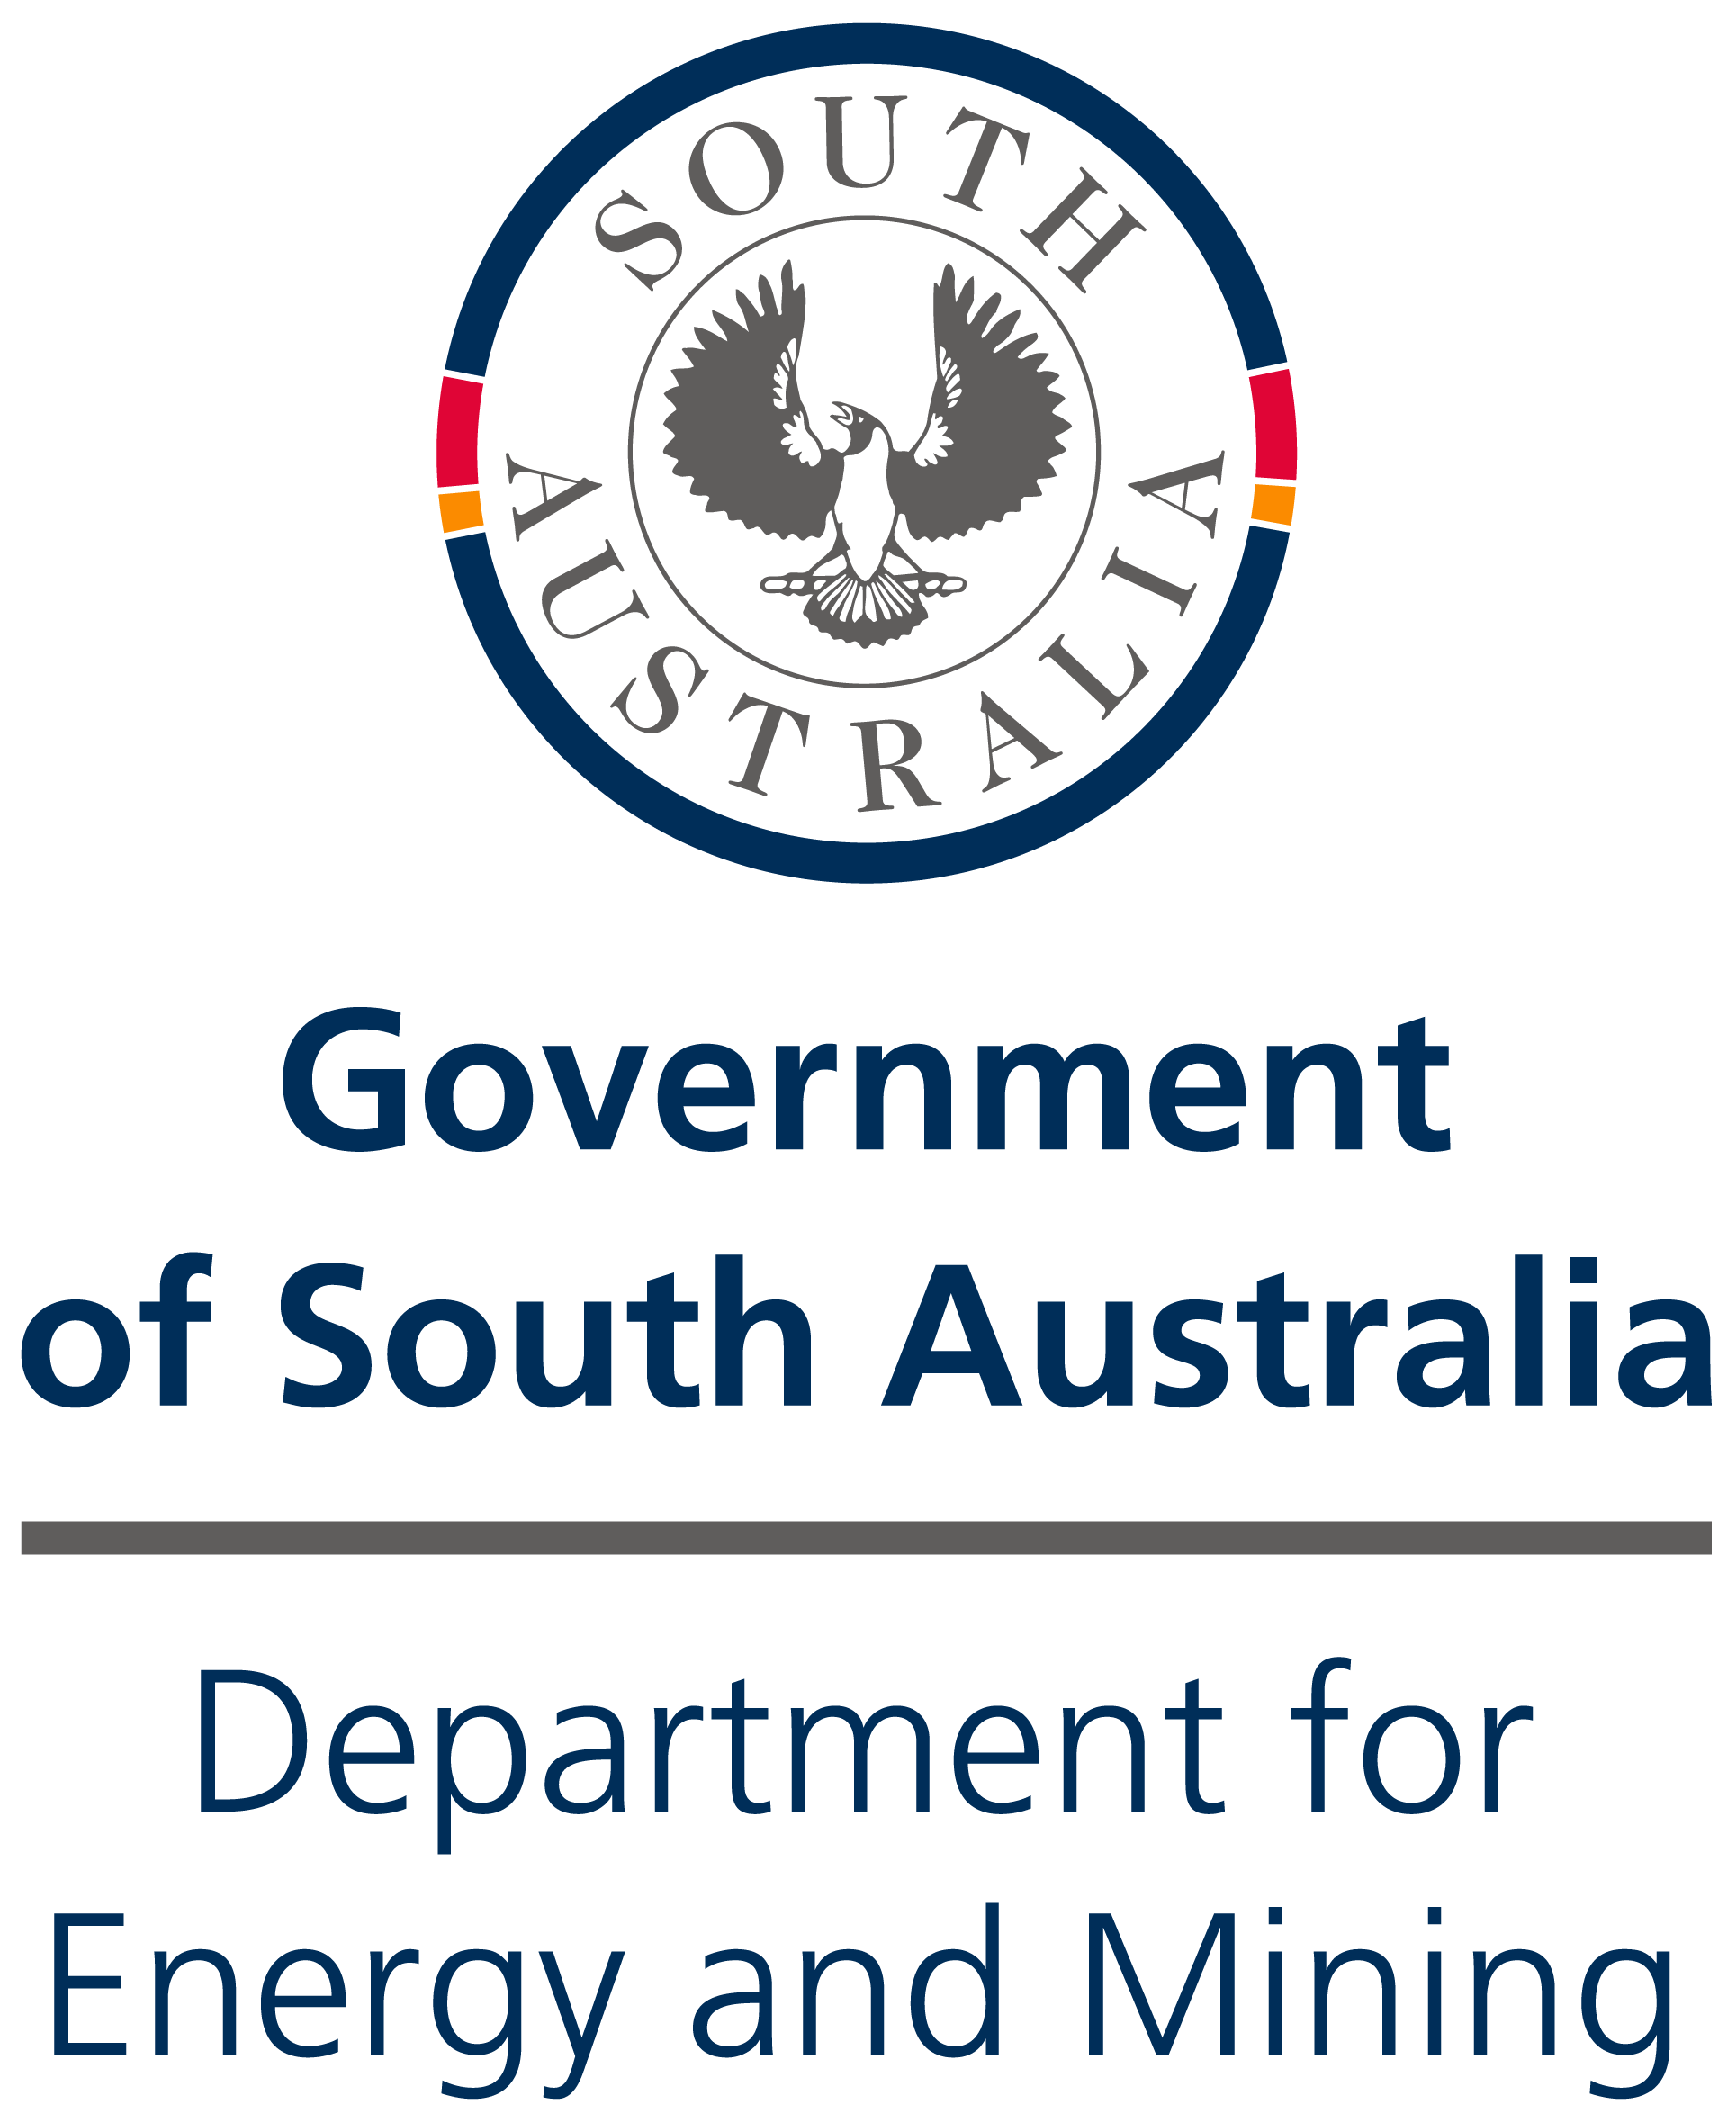 department-for-energy-and-mining